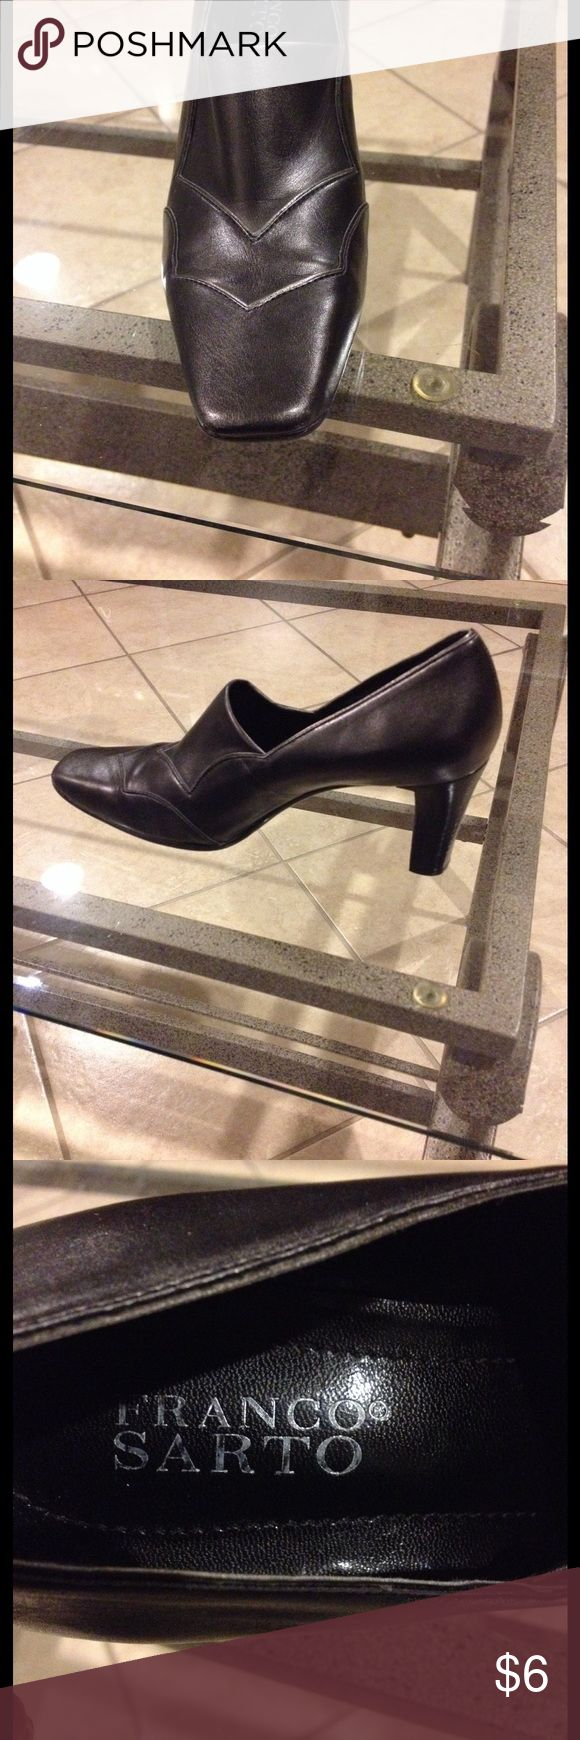 8M Franco Sarto shoes good condition Size 8M Franco Sarto Pewter shoes 3 inch heels good condition Franco Sarto Shoes